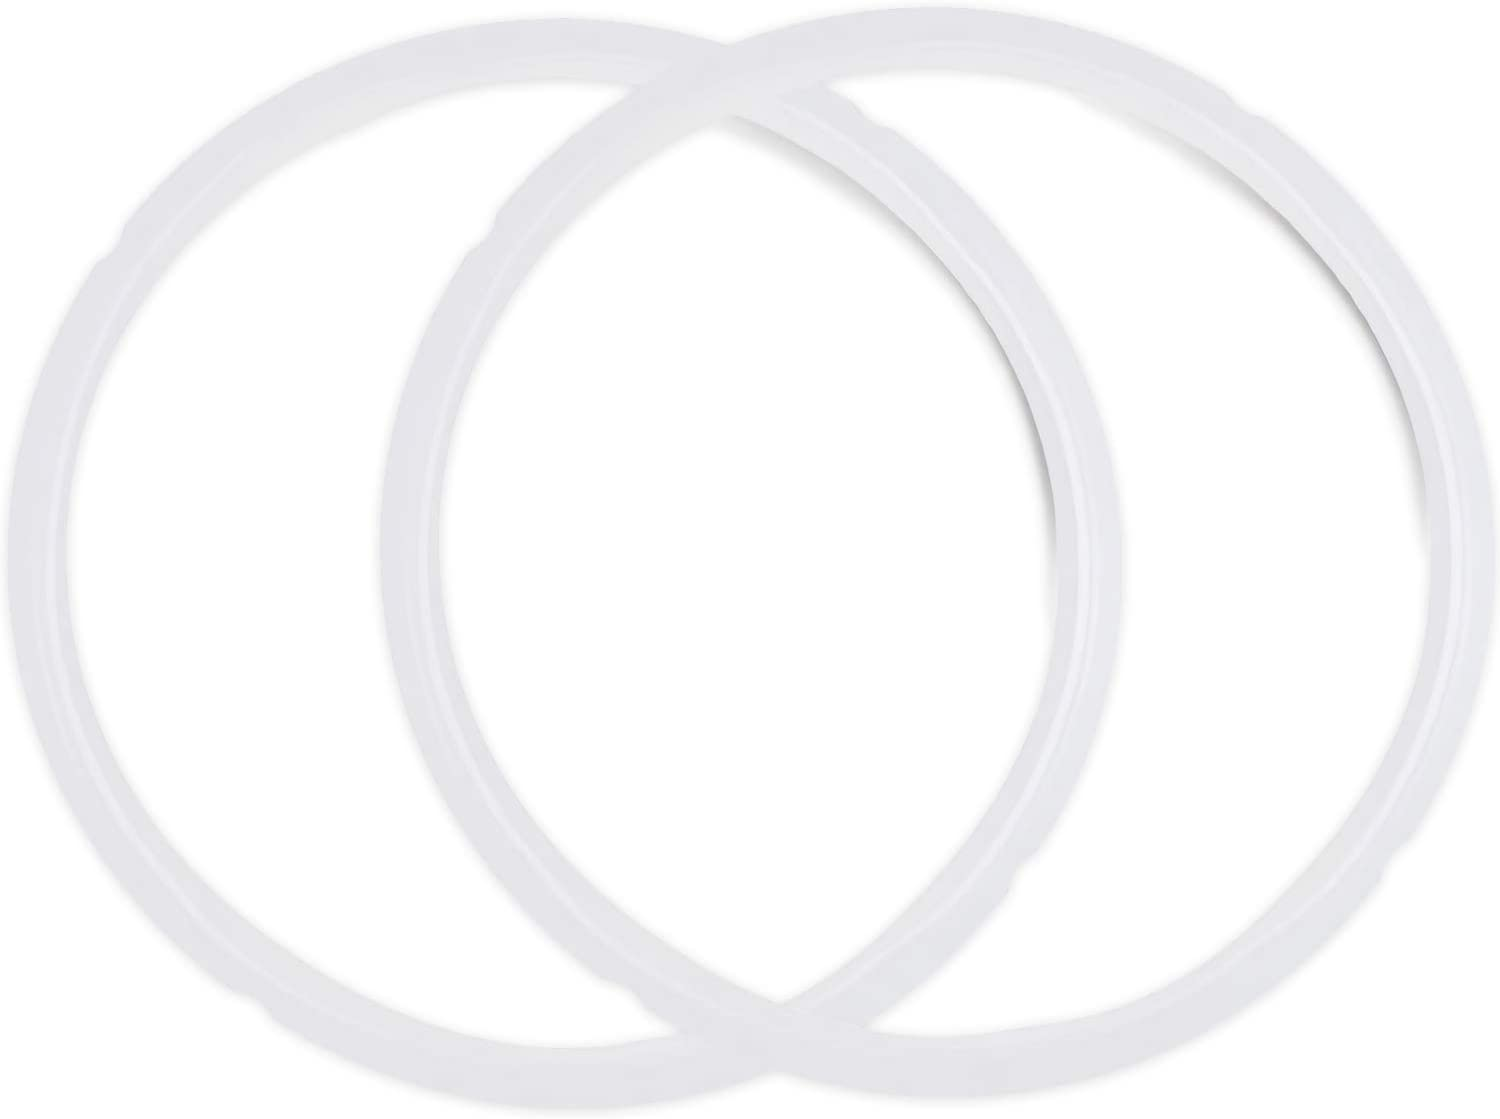 HT-direct Replacement Sealing Rings for 4quarter and 5quarter Pressuret Cooker Sealing Rings 2 Sets